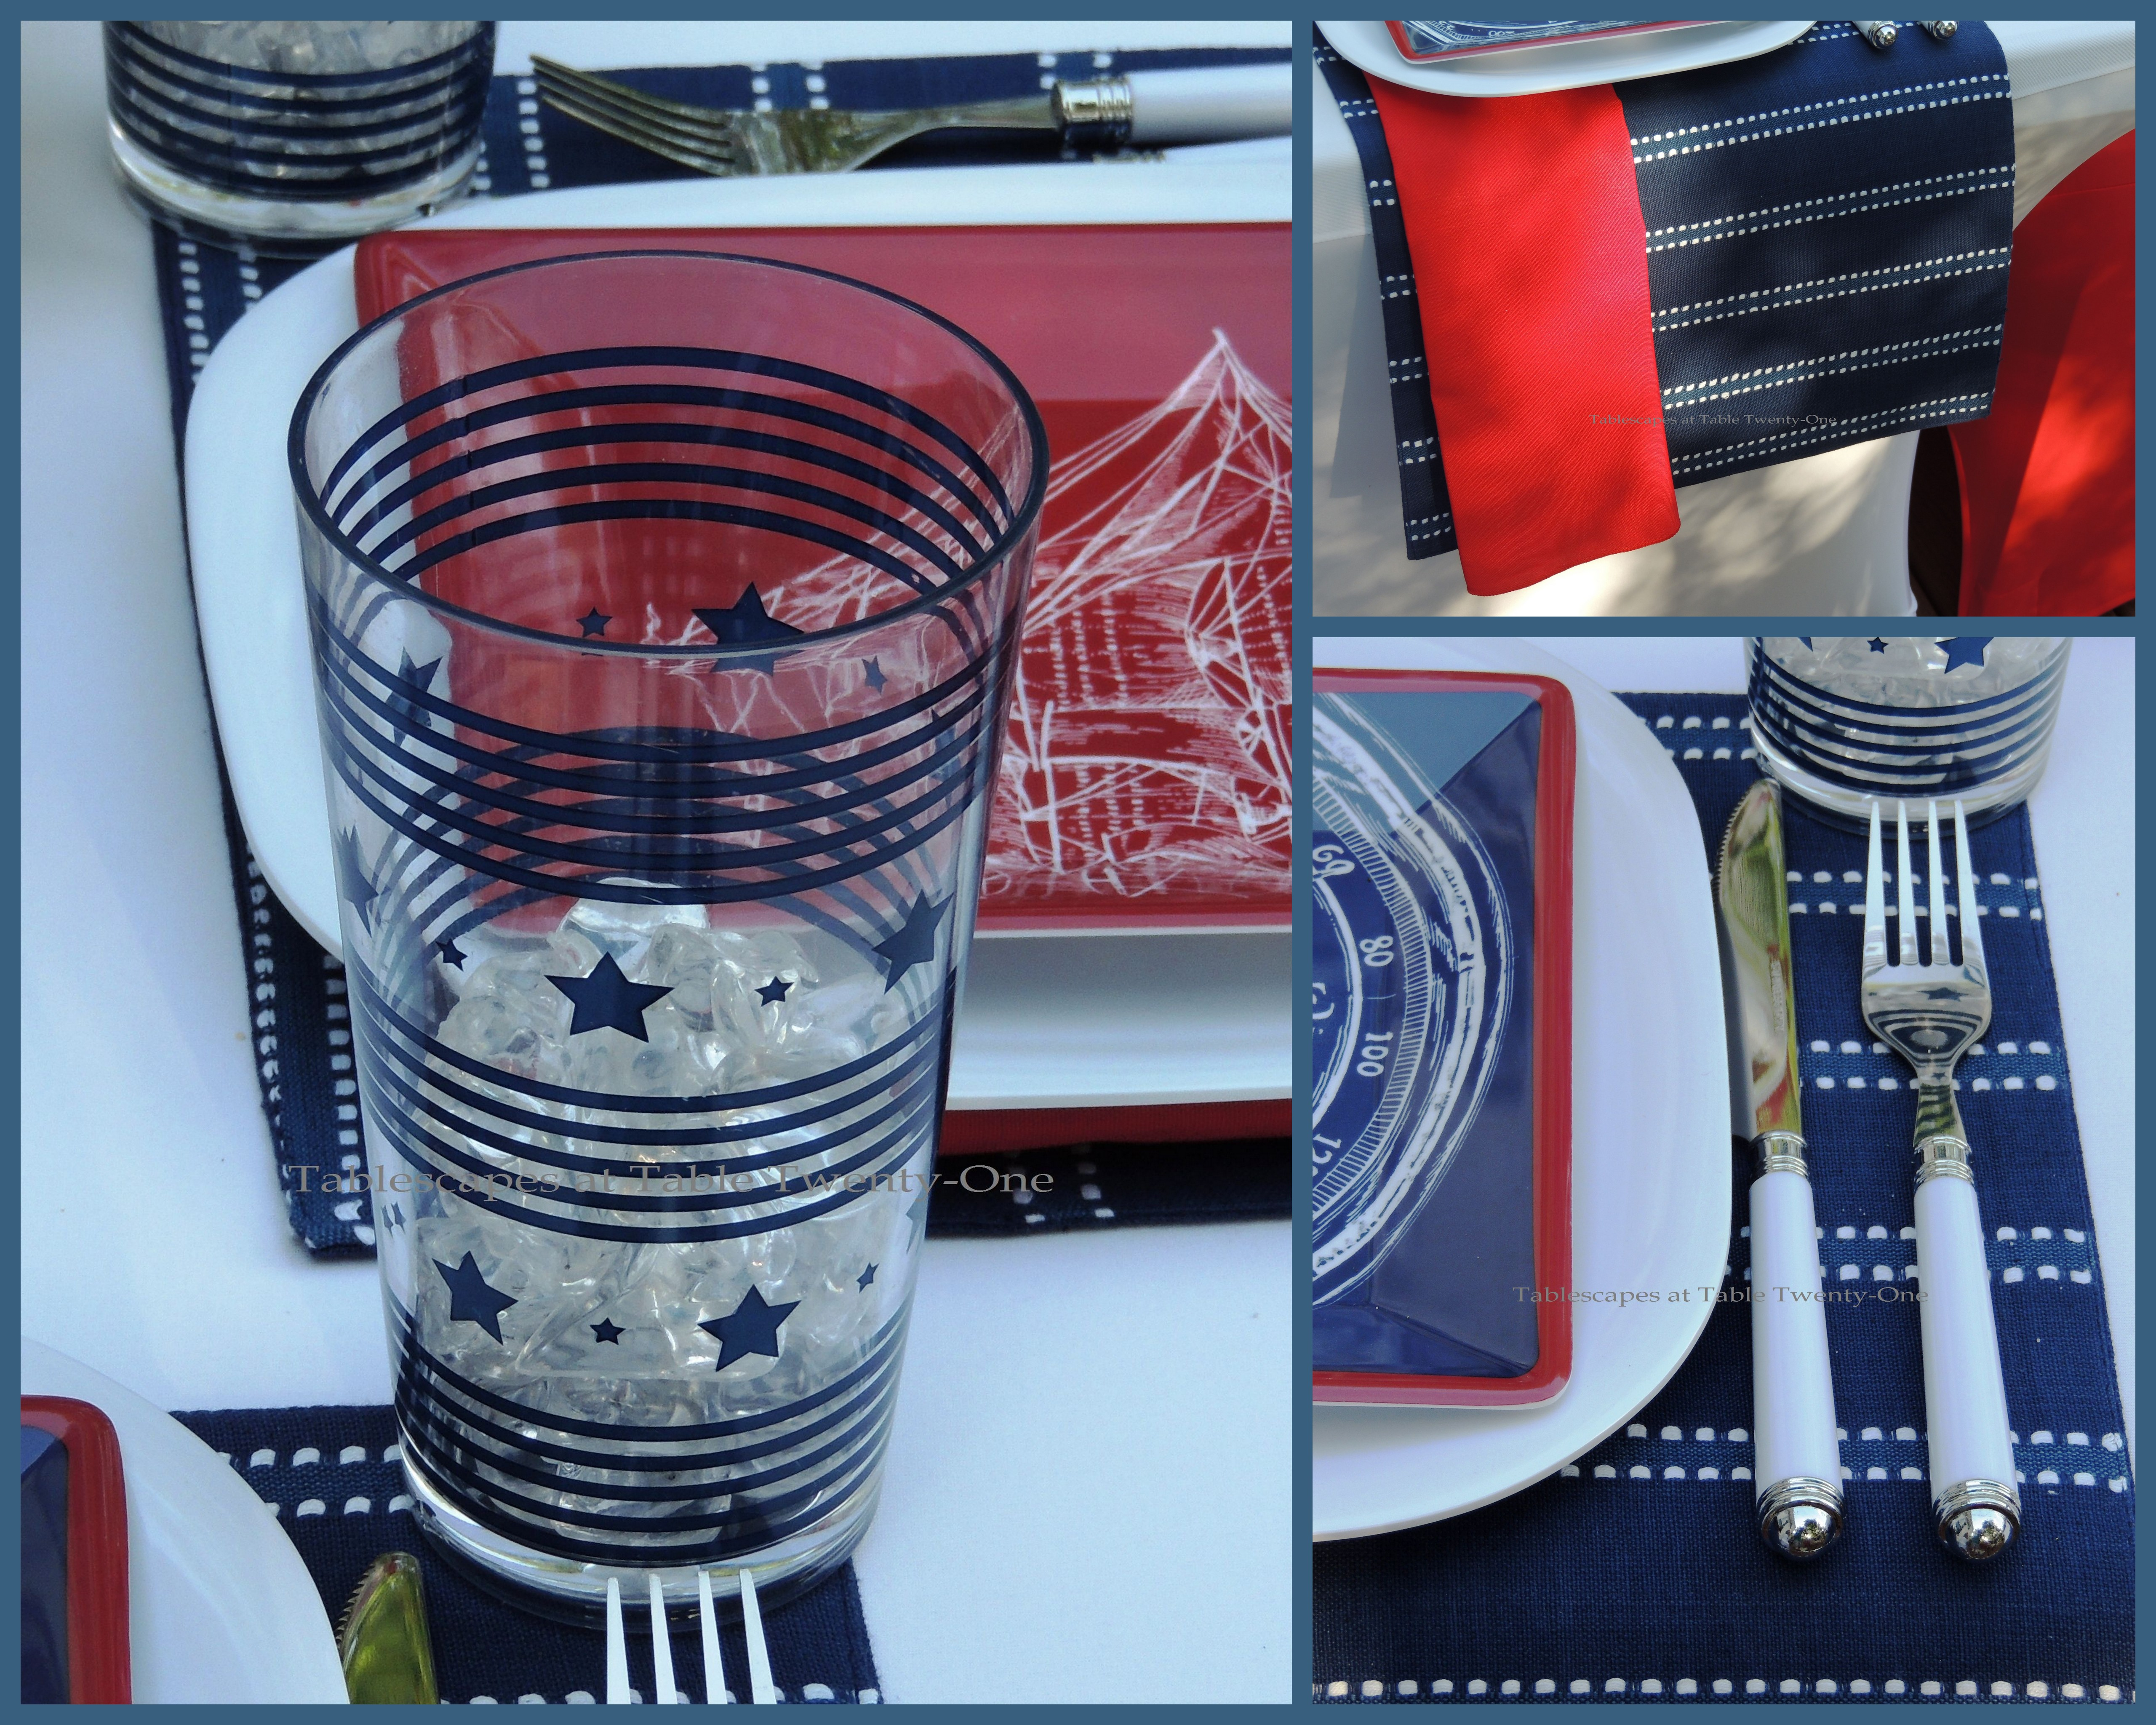 Tablescapes at Table Twenty-One, www.tabletwentyone.wordpress.com, 4th of July Coastal Style: red napkin, navy & white striped placemat, flatware, stars & stripes tumbler collage